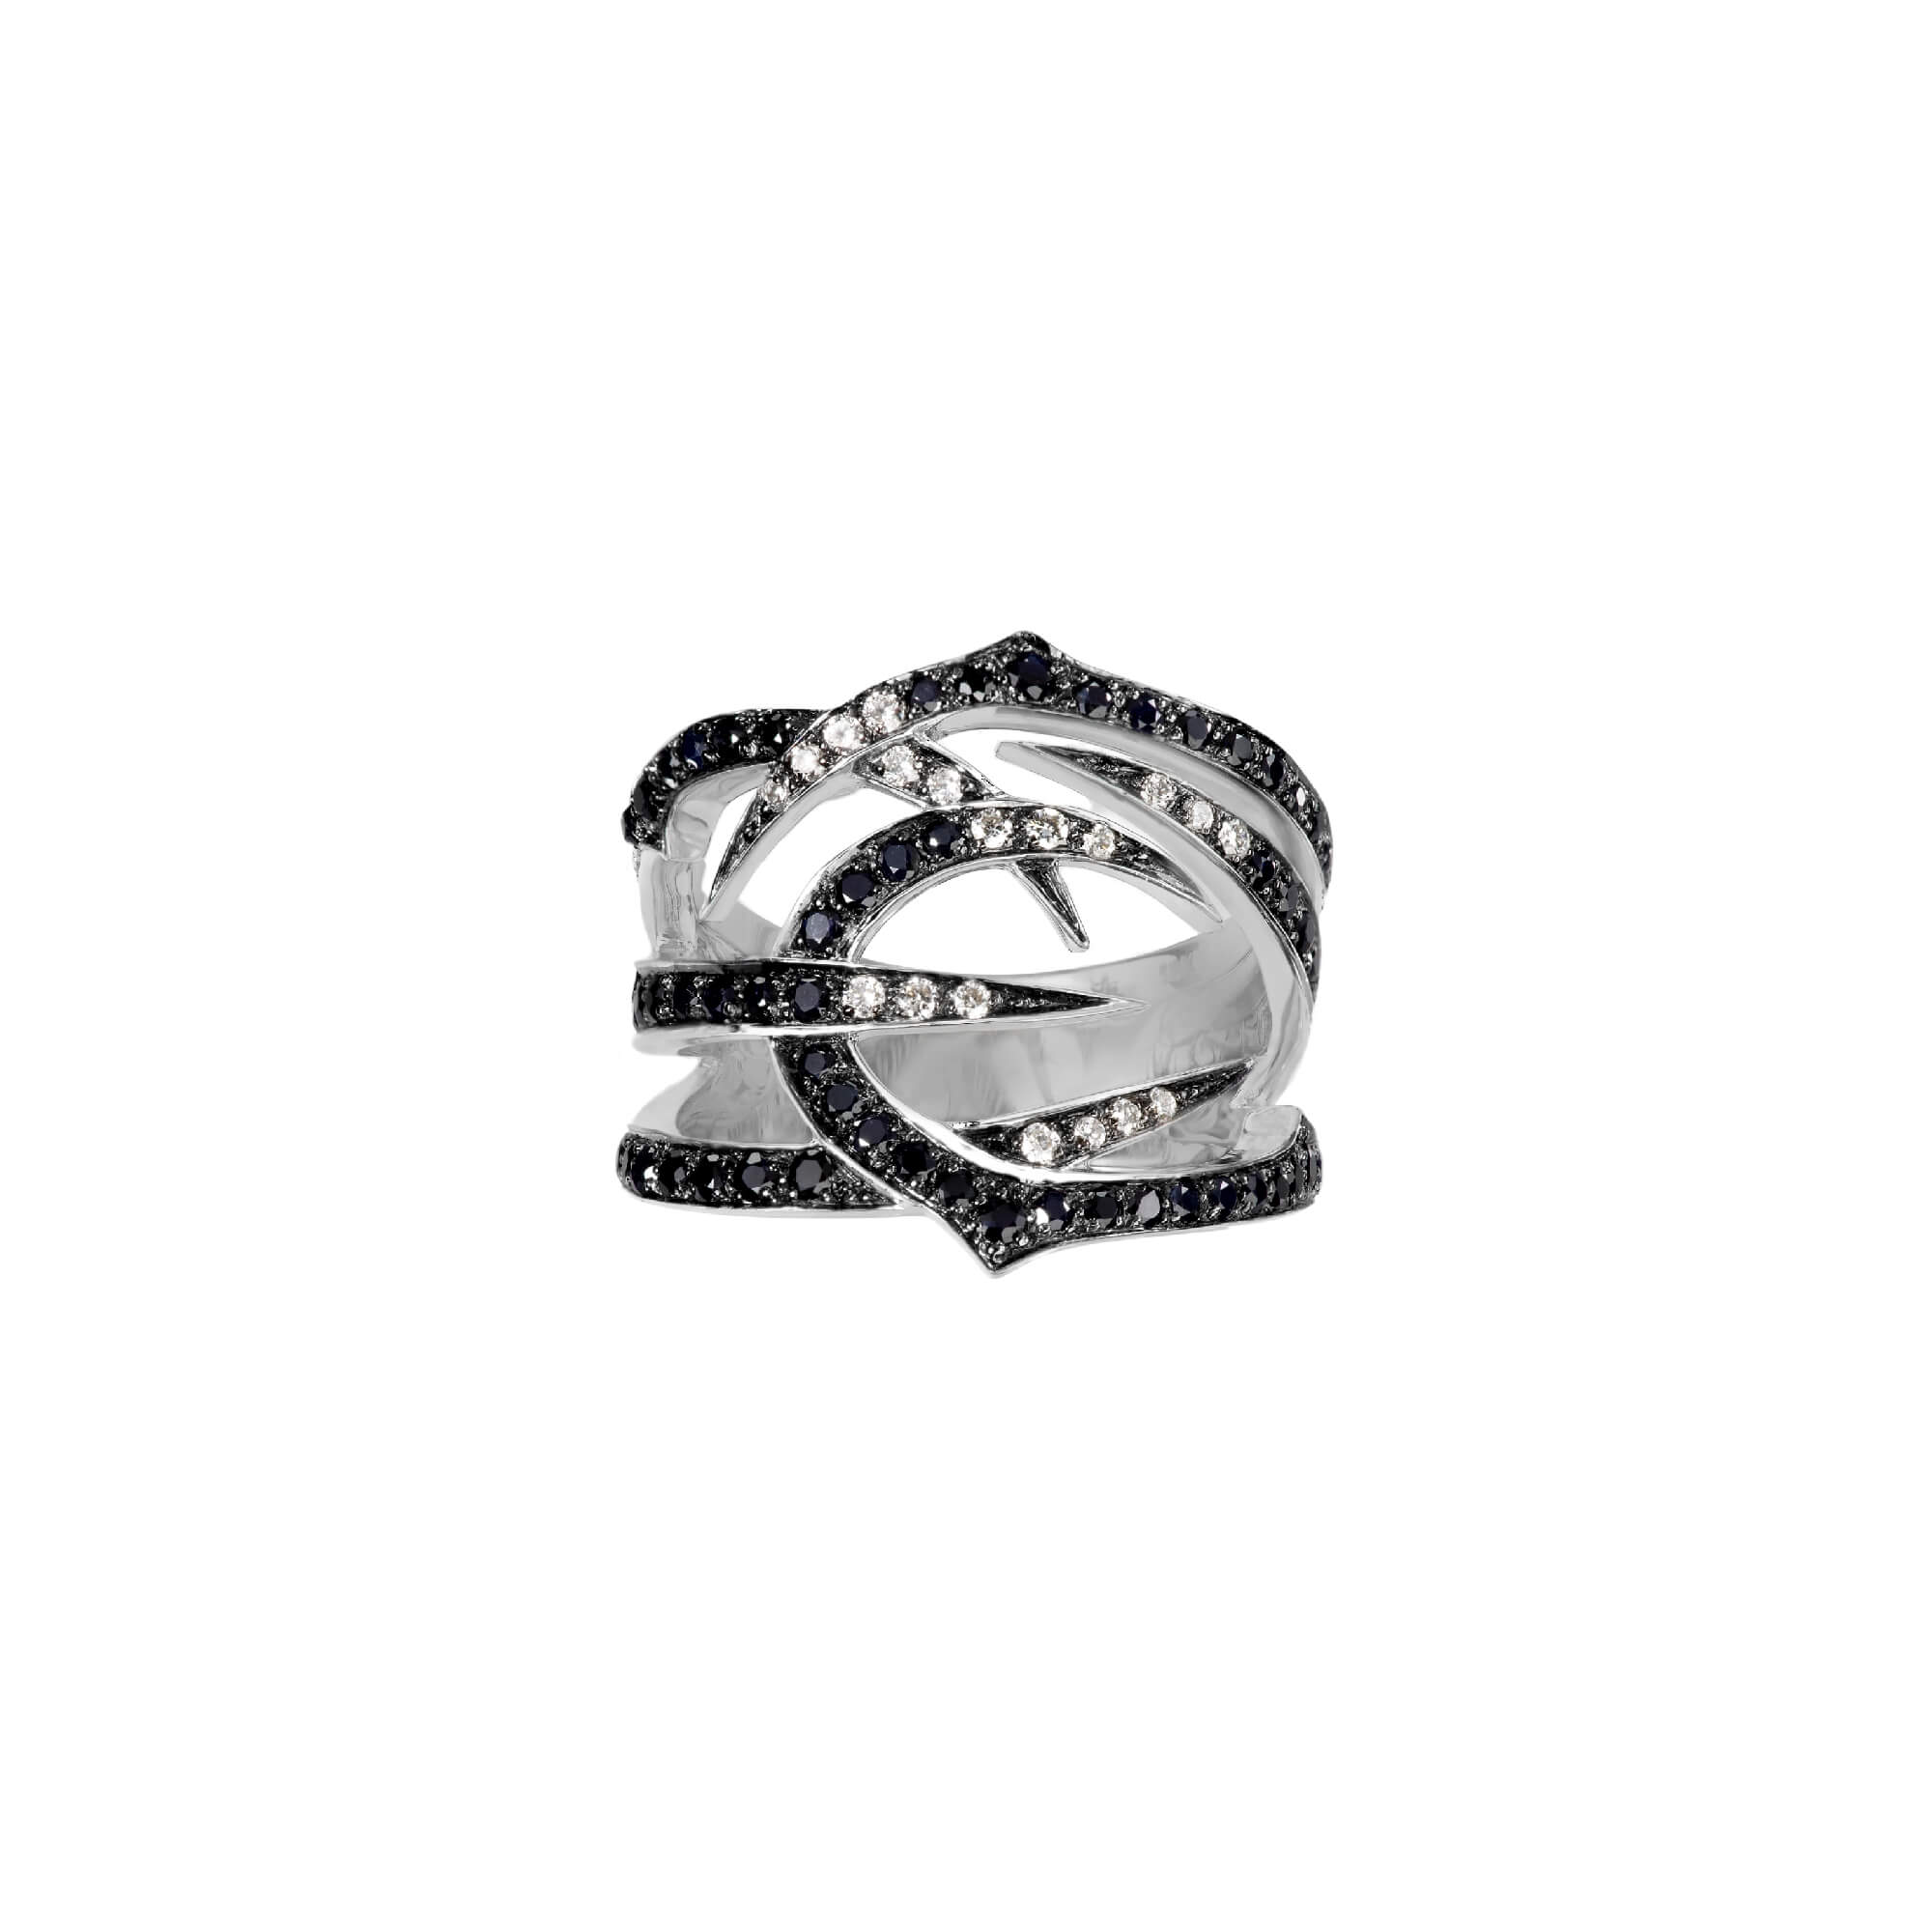 White Gold Ring with Black Diamond | Thorn